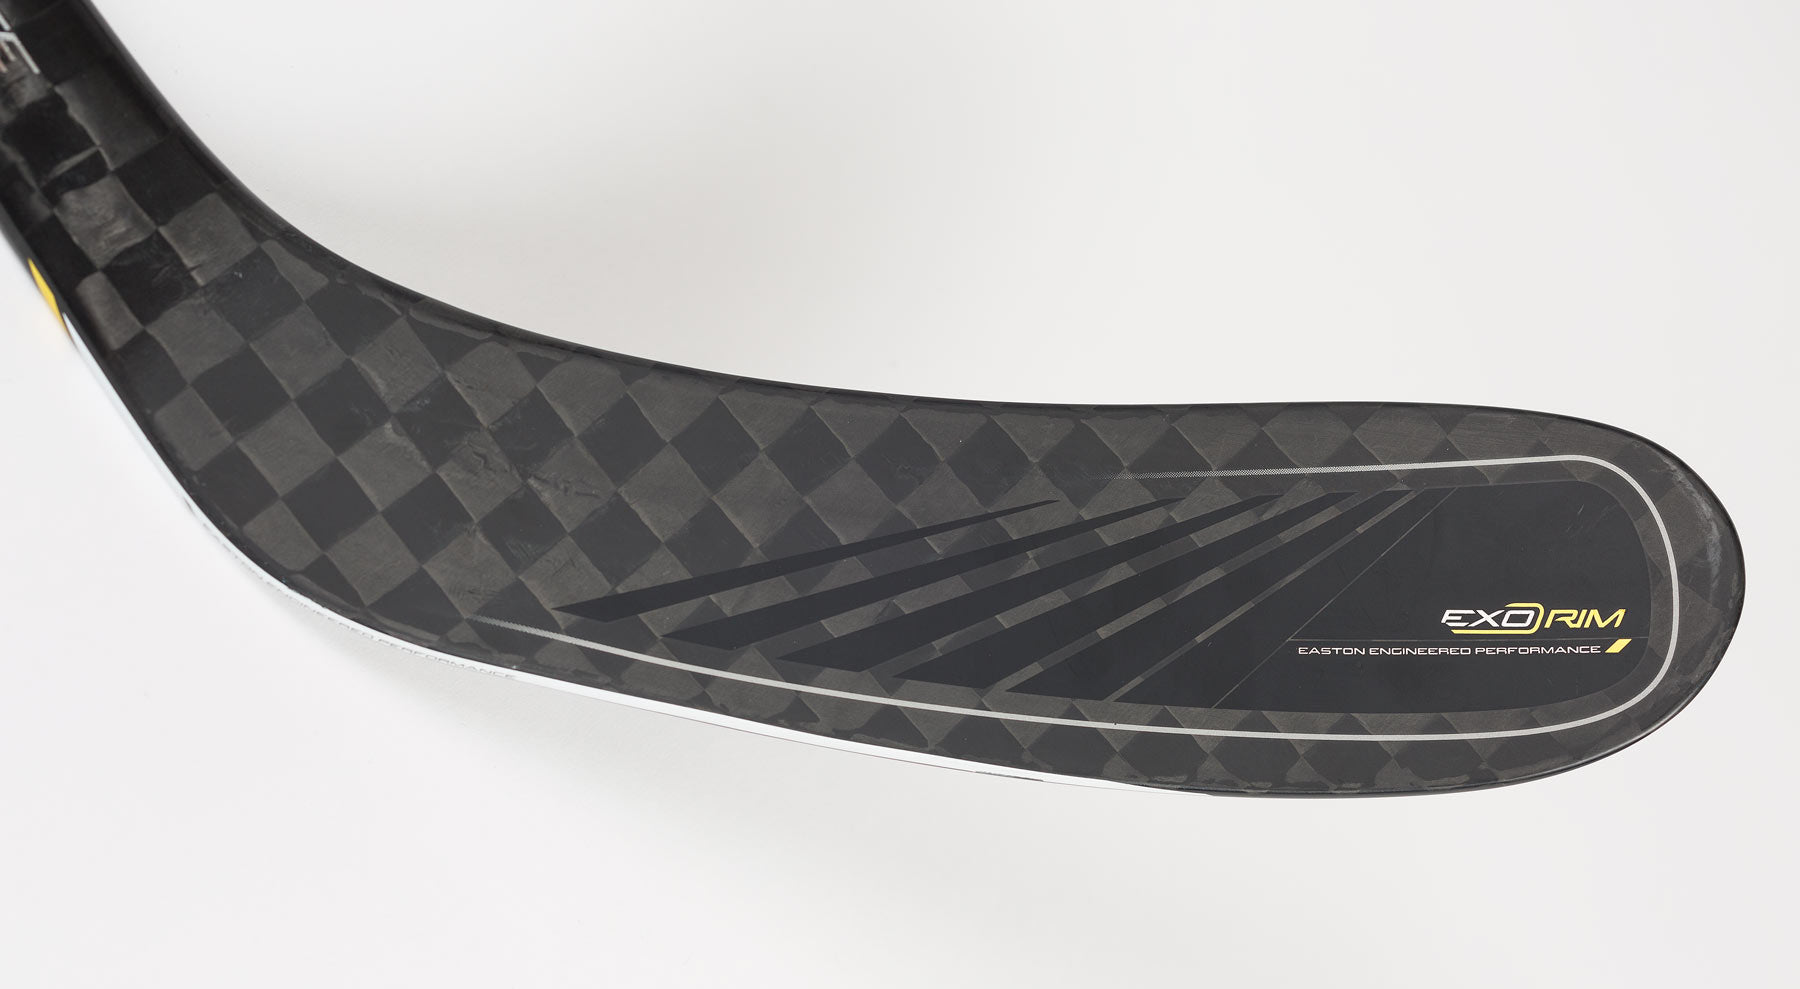 The Hockey Shop Easton Stealth CX composite stick review